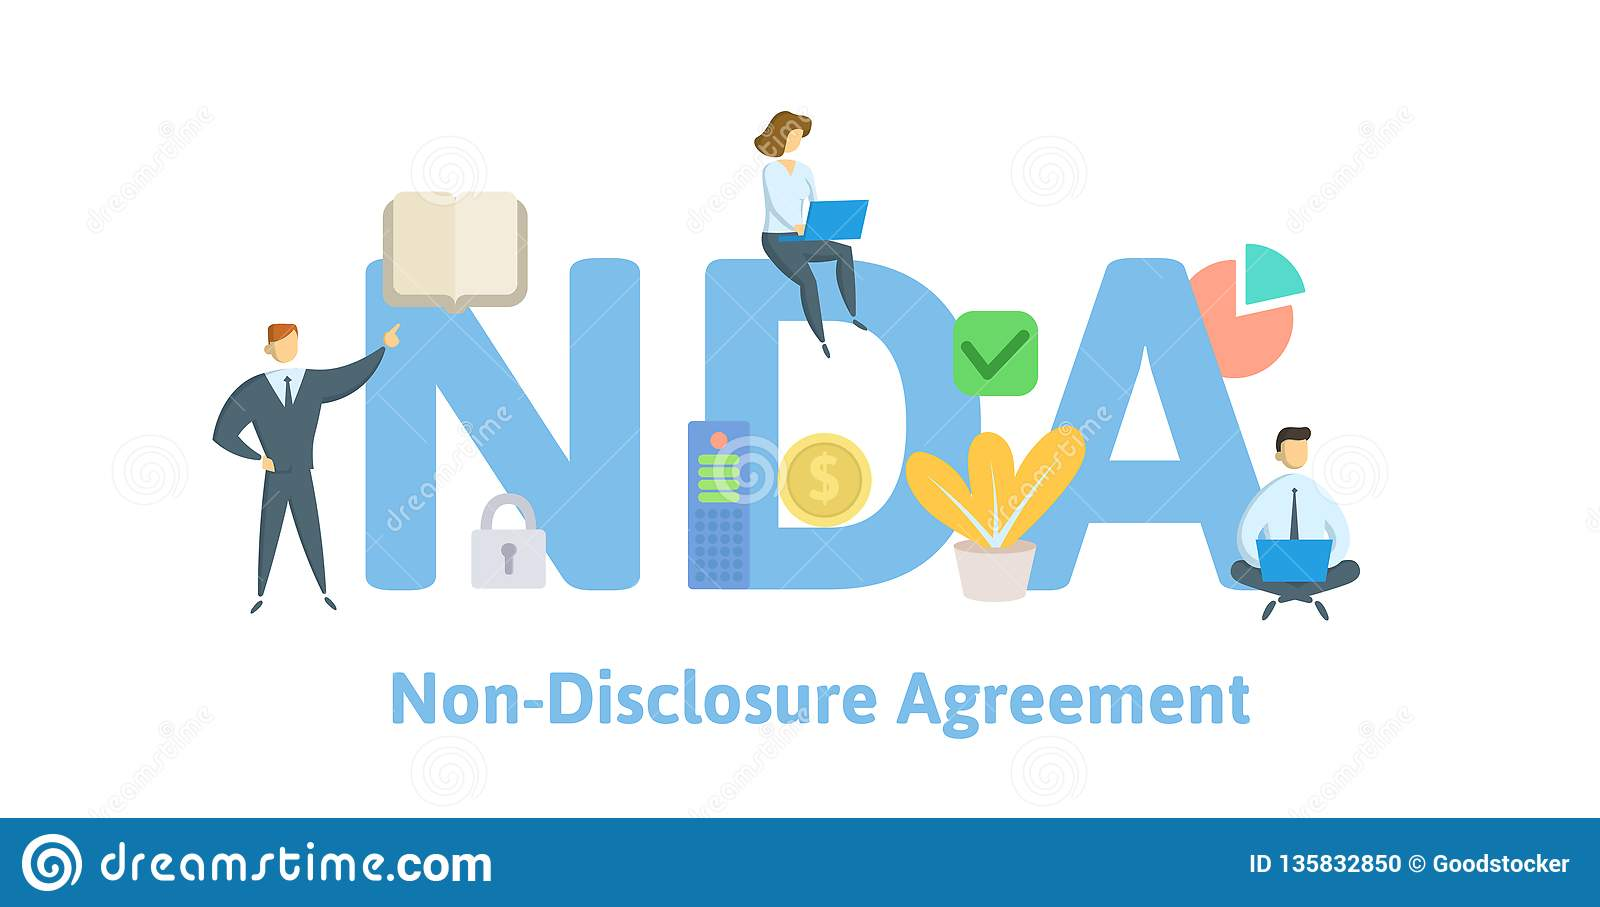 Nda Non Disclosure Agreement Concept With Keywords